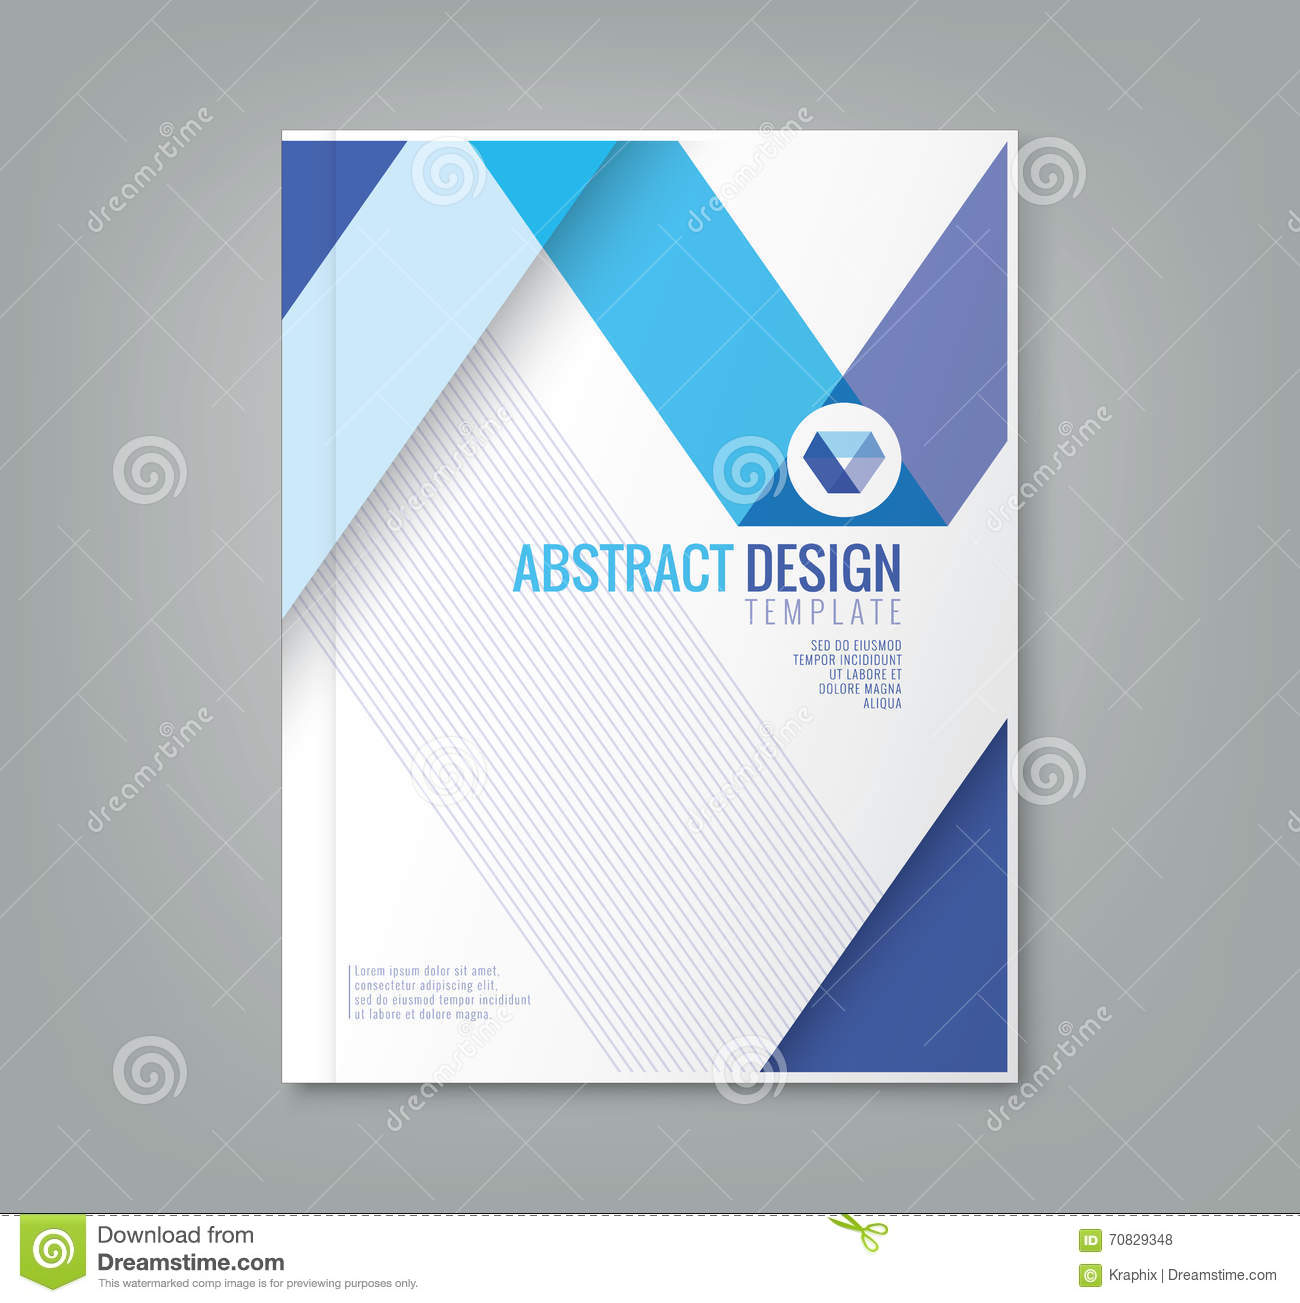 Book Cover Design Hd : Abstract line design background template for business